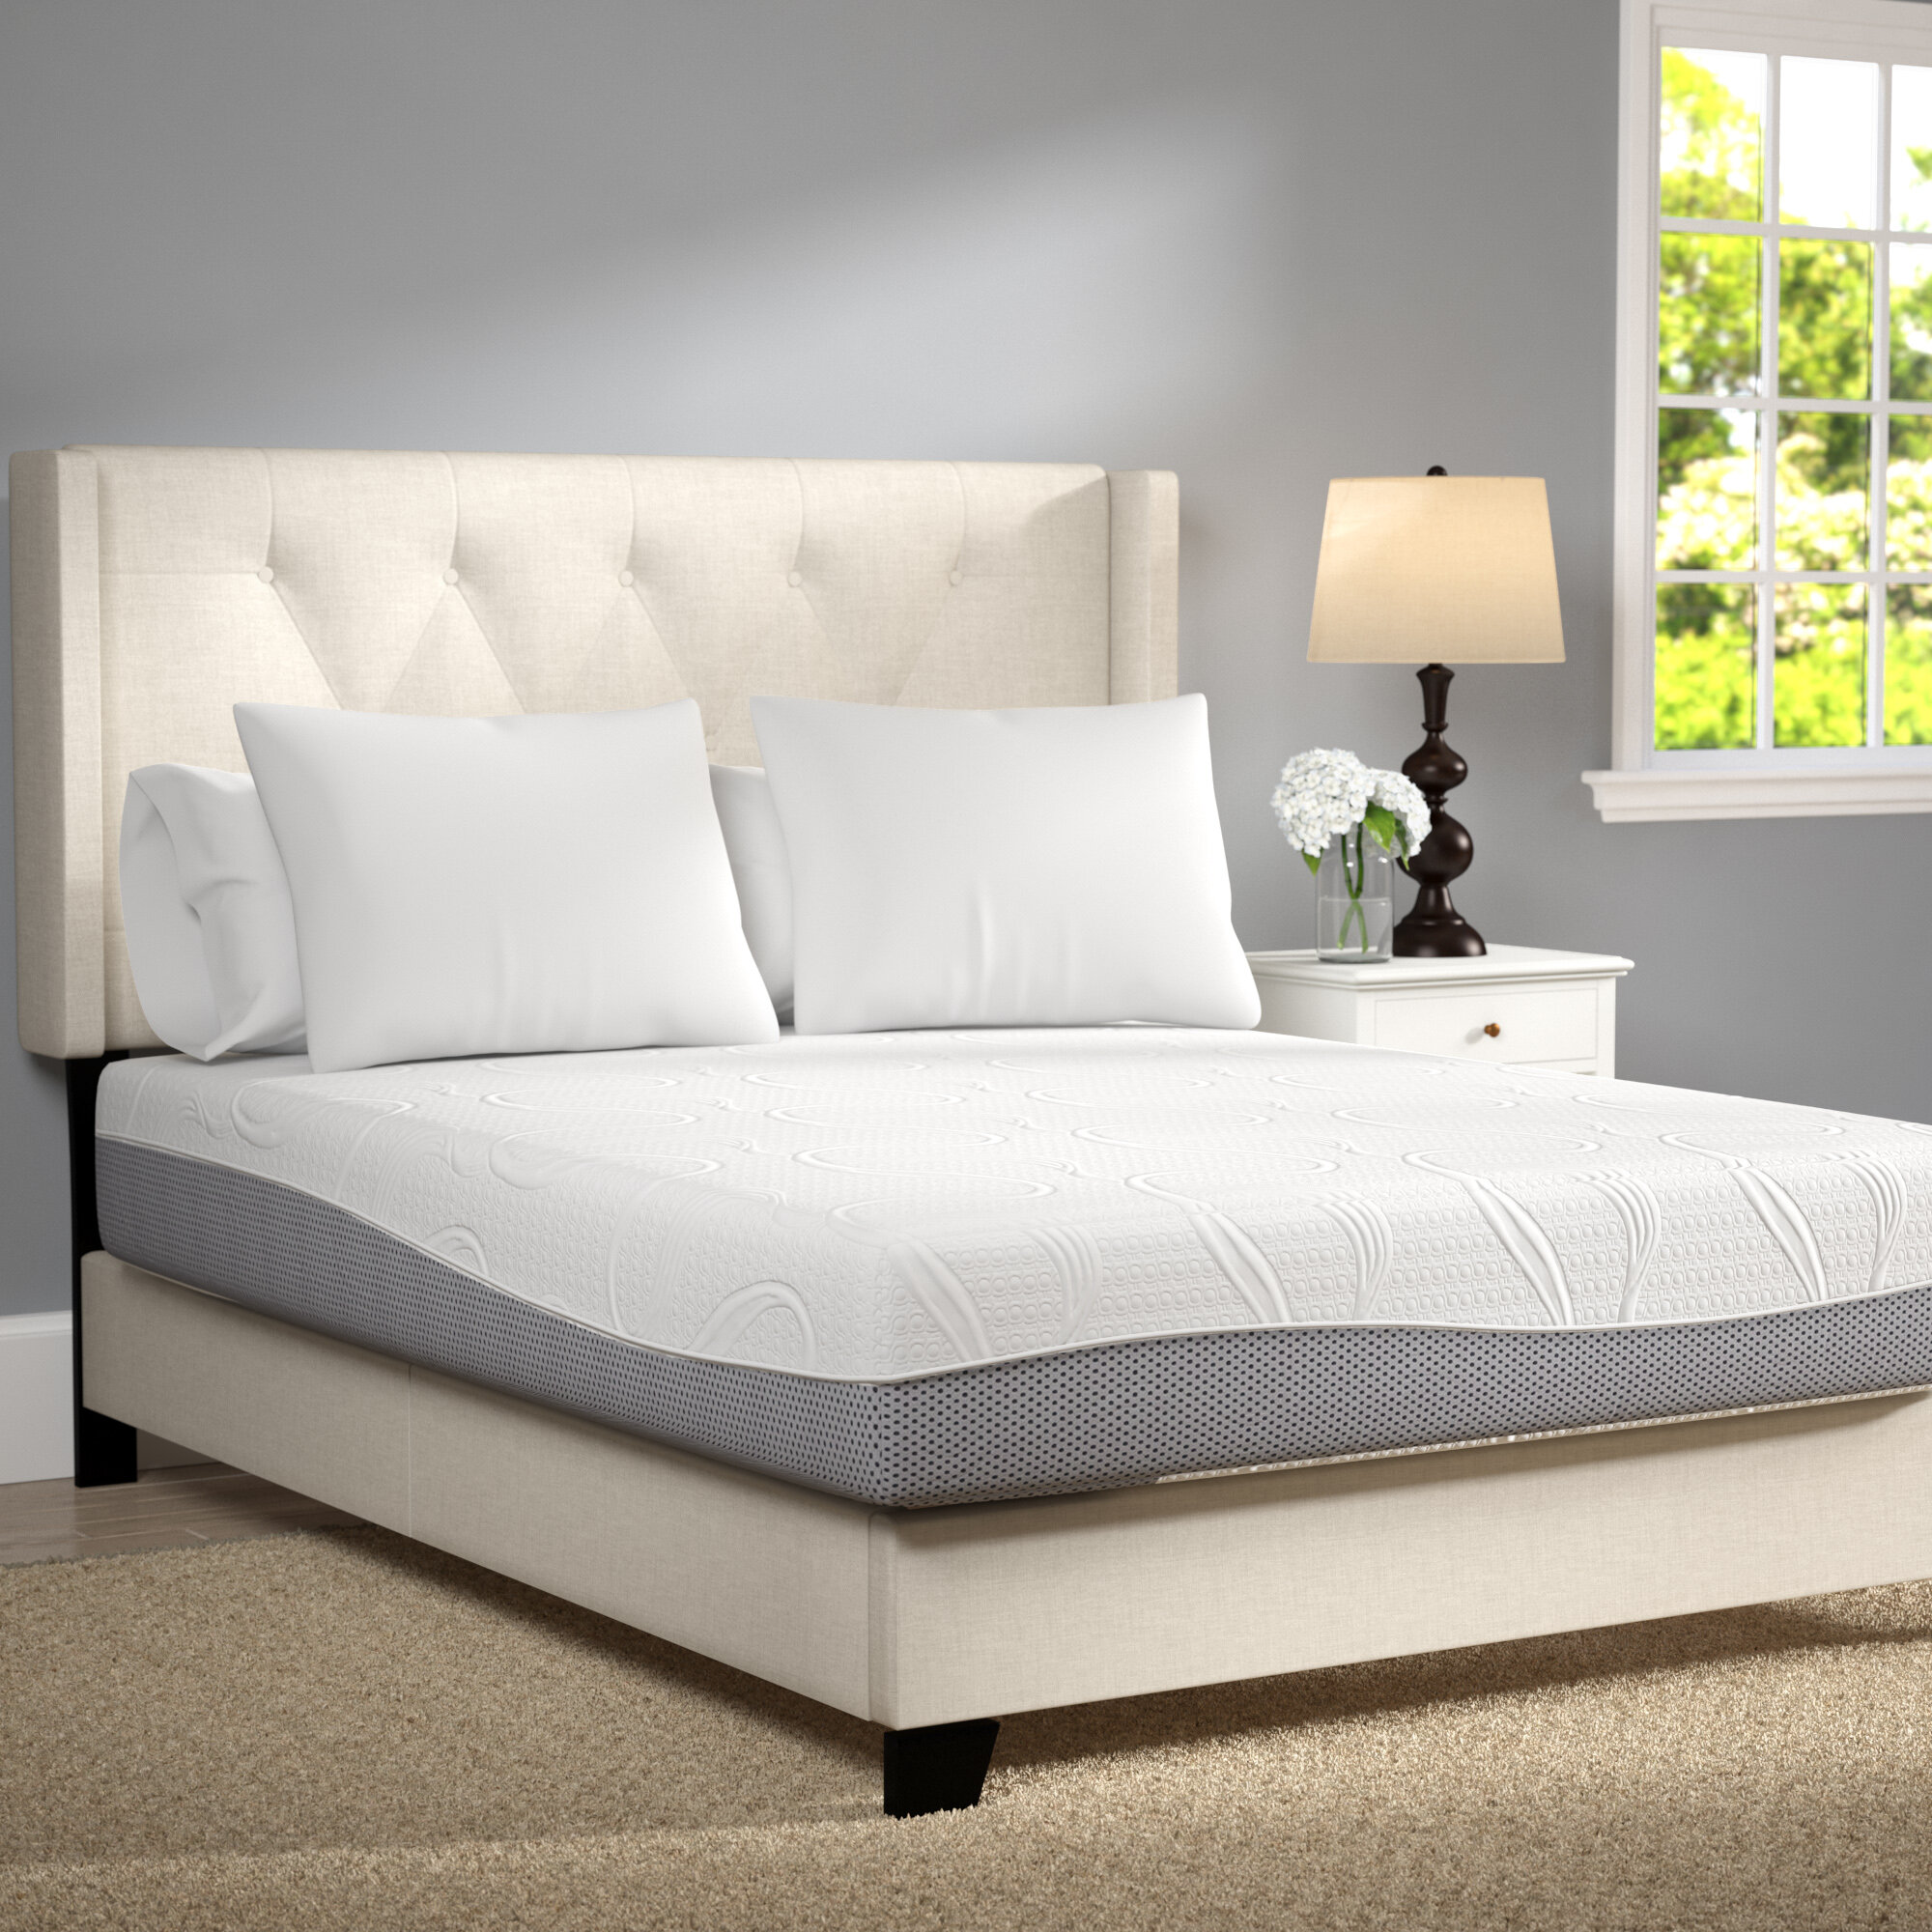 sale jacksonville florida bedding geekz store sleep mattresses tempurpedic mattress